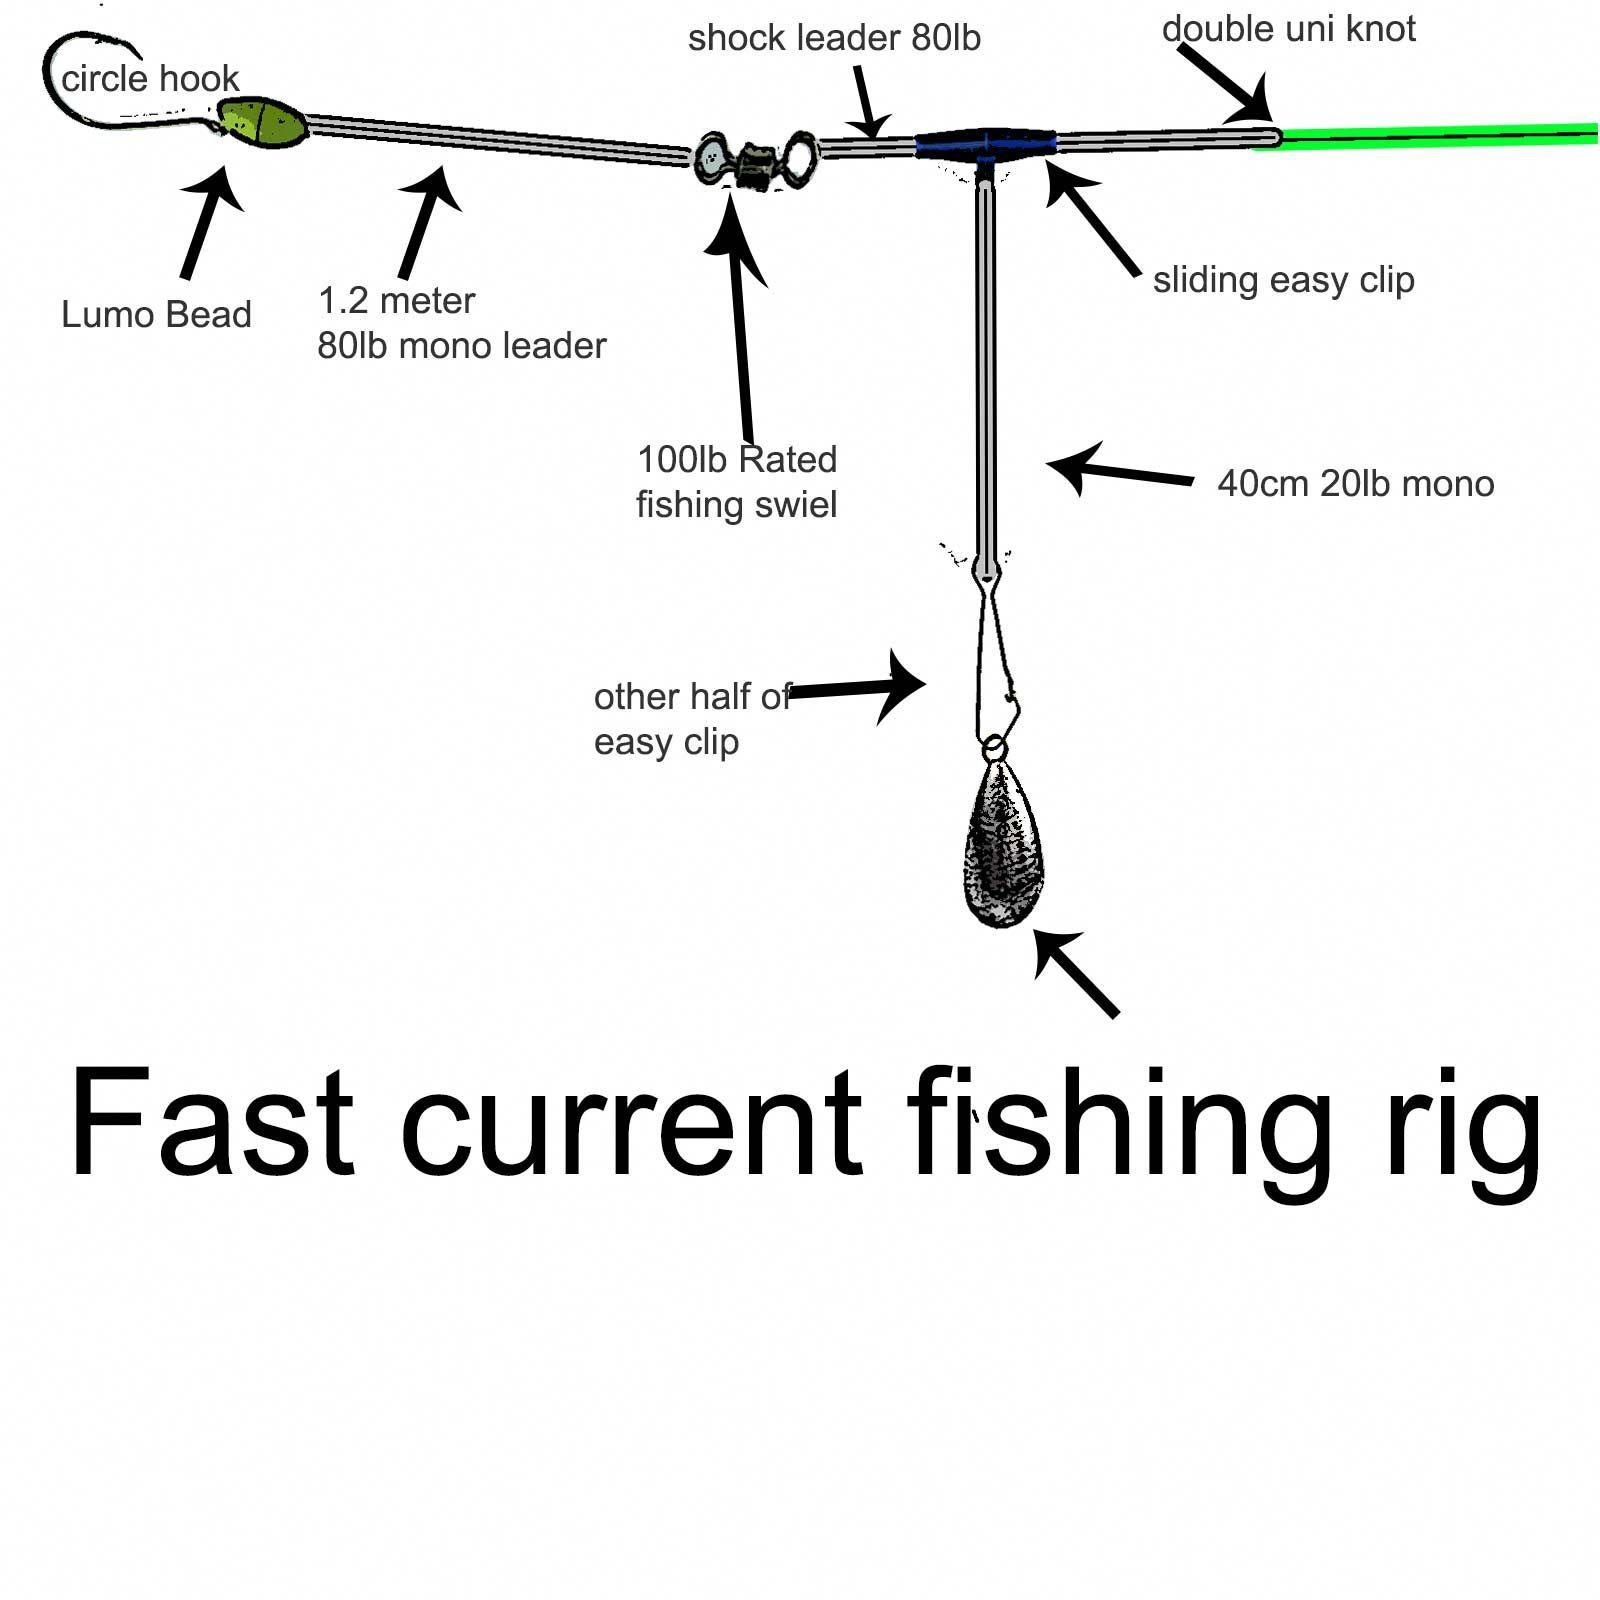 shark rig diagram wiring library diagram a2 daytime swordfish rig diagram fast current fishing rig diagram [ 1600 x 1600 Pixel ]